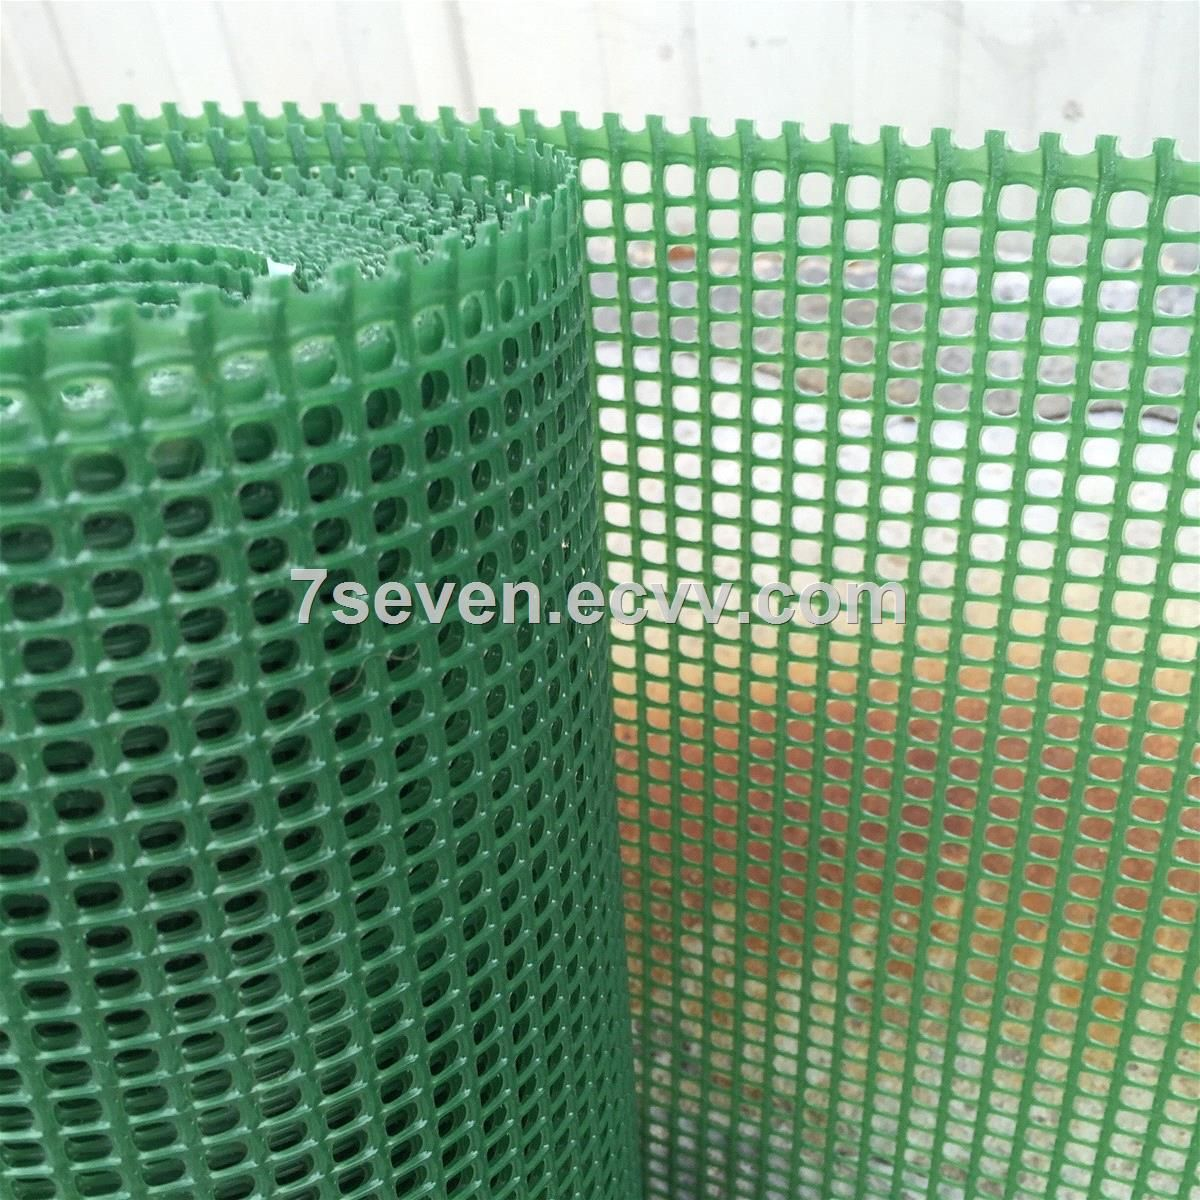 Factory Supply Green Gardening Fence Plastic Squsre Mesh Netting Ss198506 China